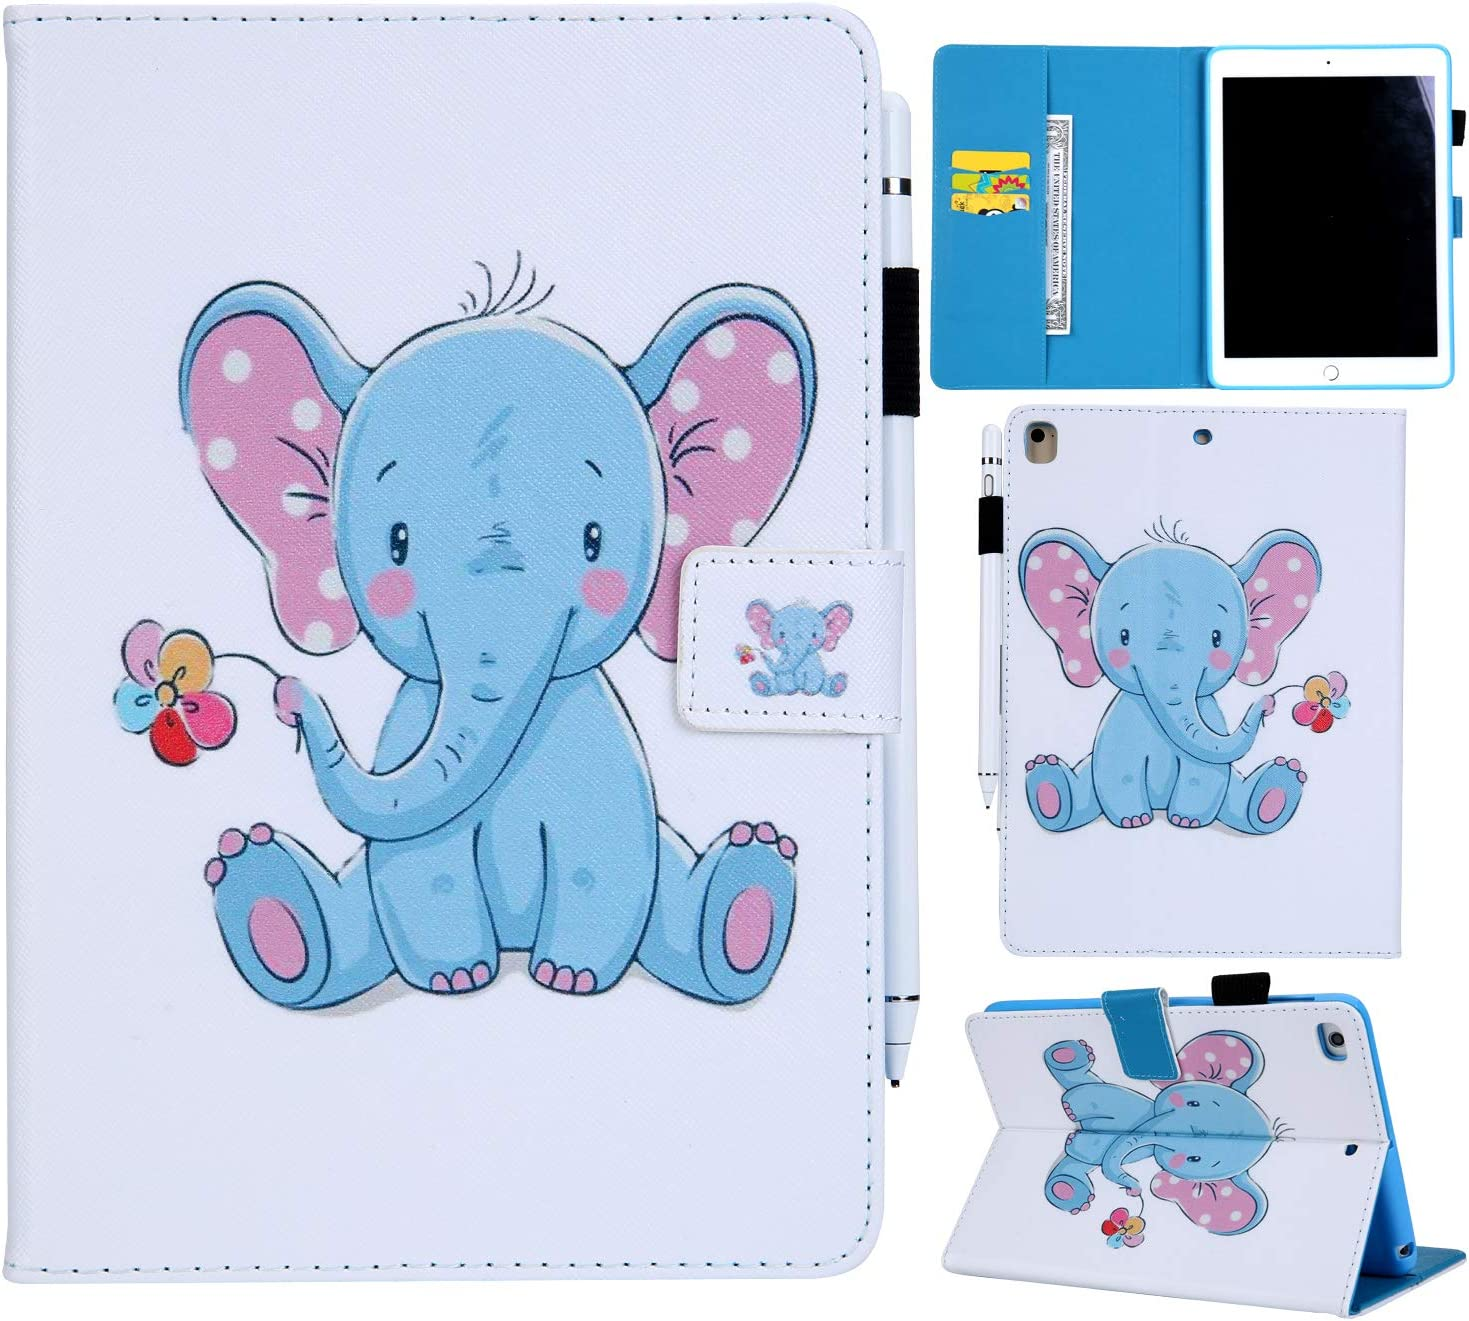 YKTO PU Leather Folio Stand Cover for Apple iPad 9.7 2018//2017 Full Body Wallet Shockproof Drop Resistance Bumper Protective Case Cute Cartoon Baby Elephant Animal Tablet Case iPad 6, iPad 5